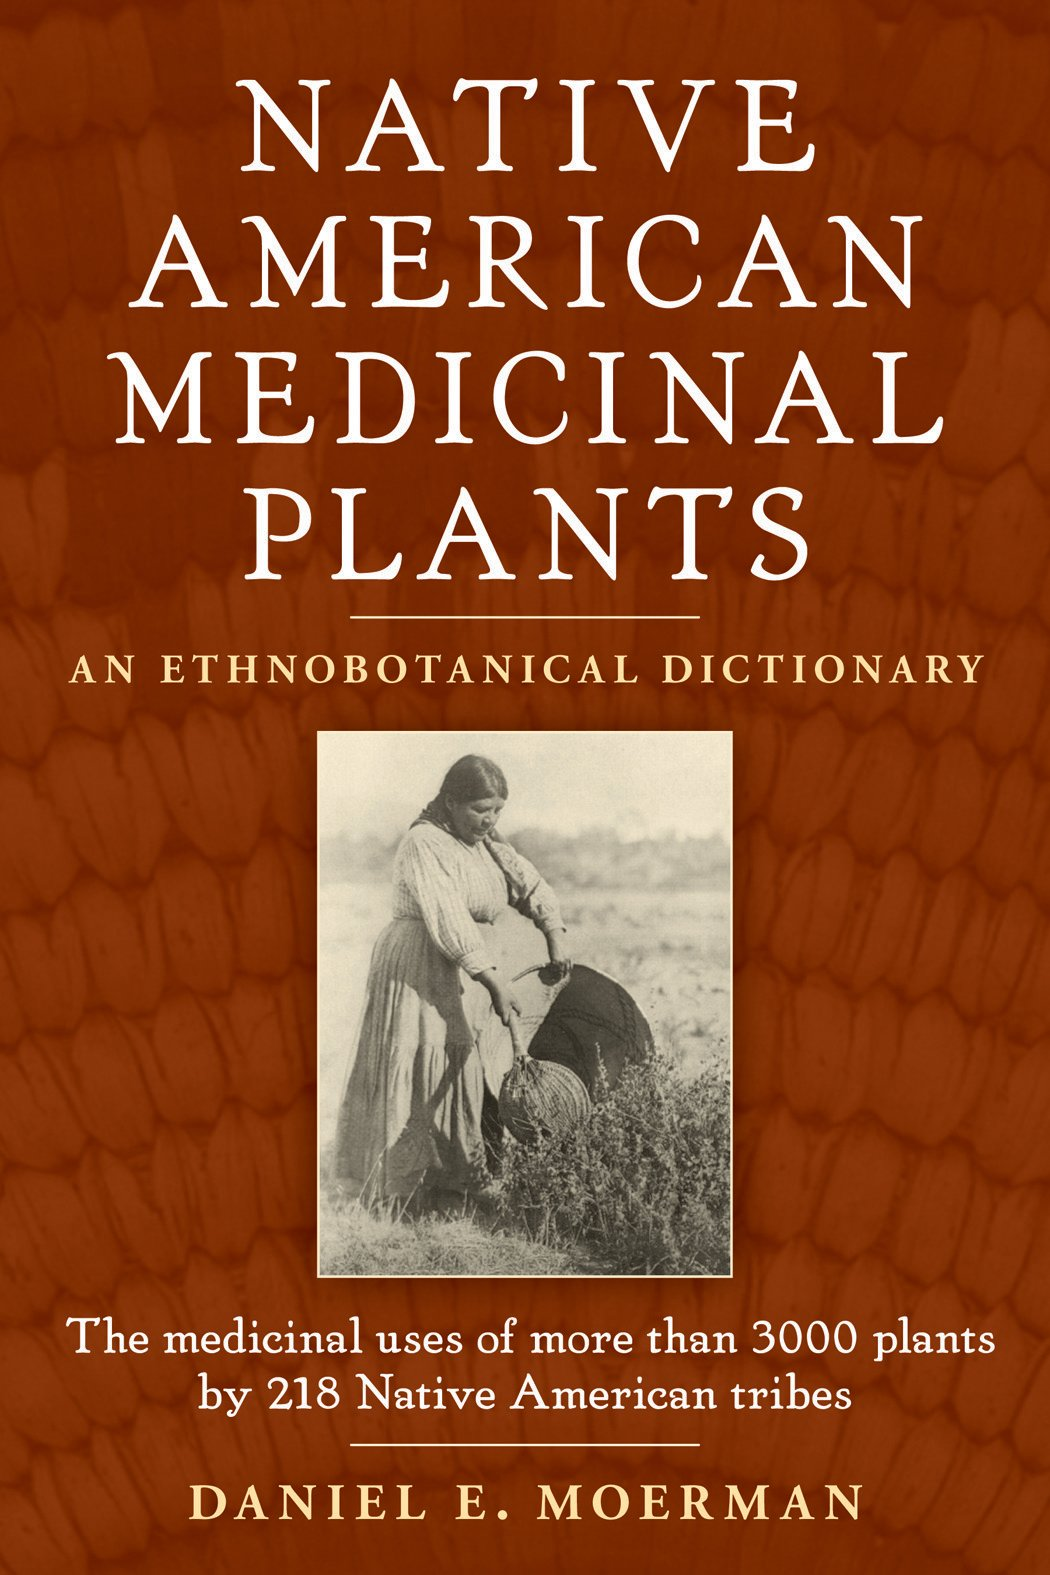 Native American Medicinal Plants: An Ethnobotanical Dictionary by Brand: Timber Press